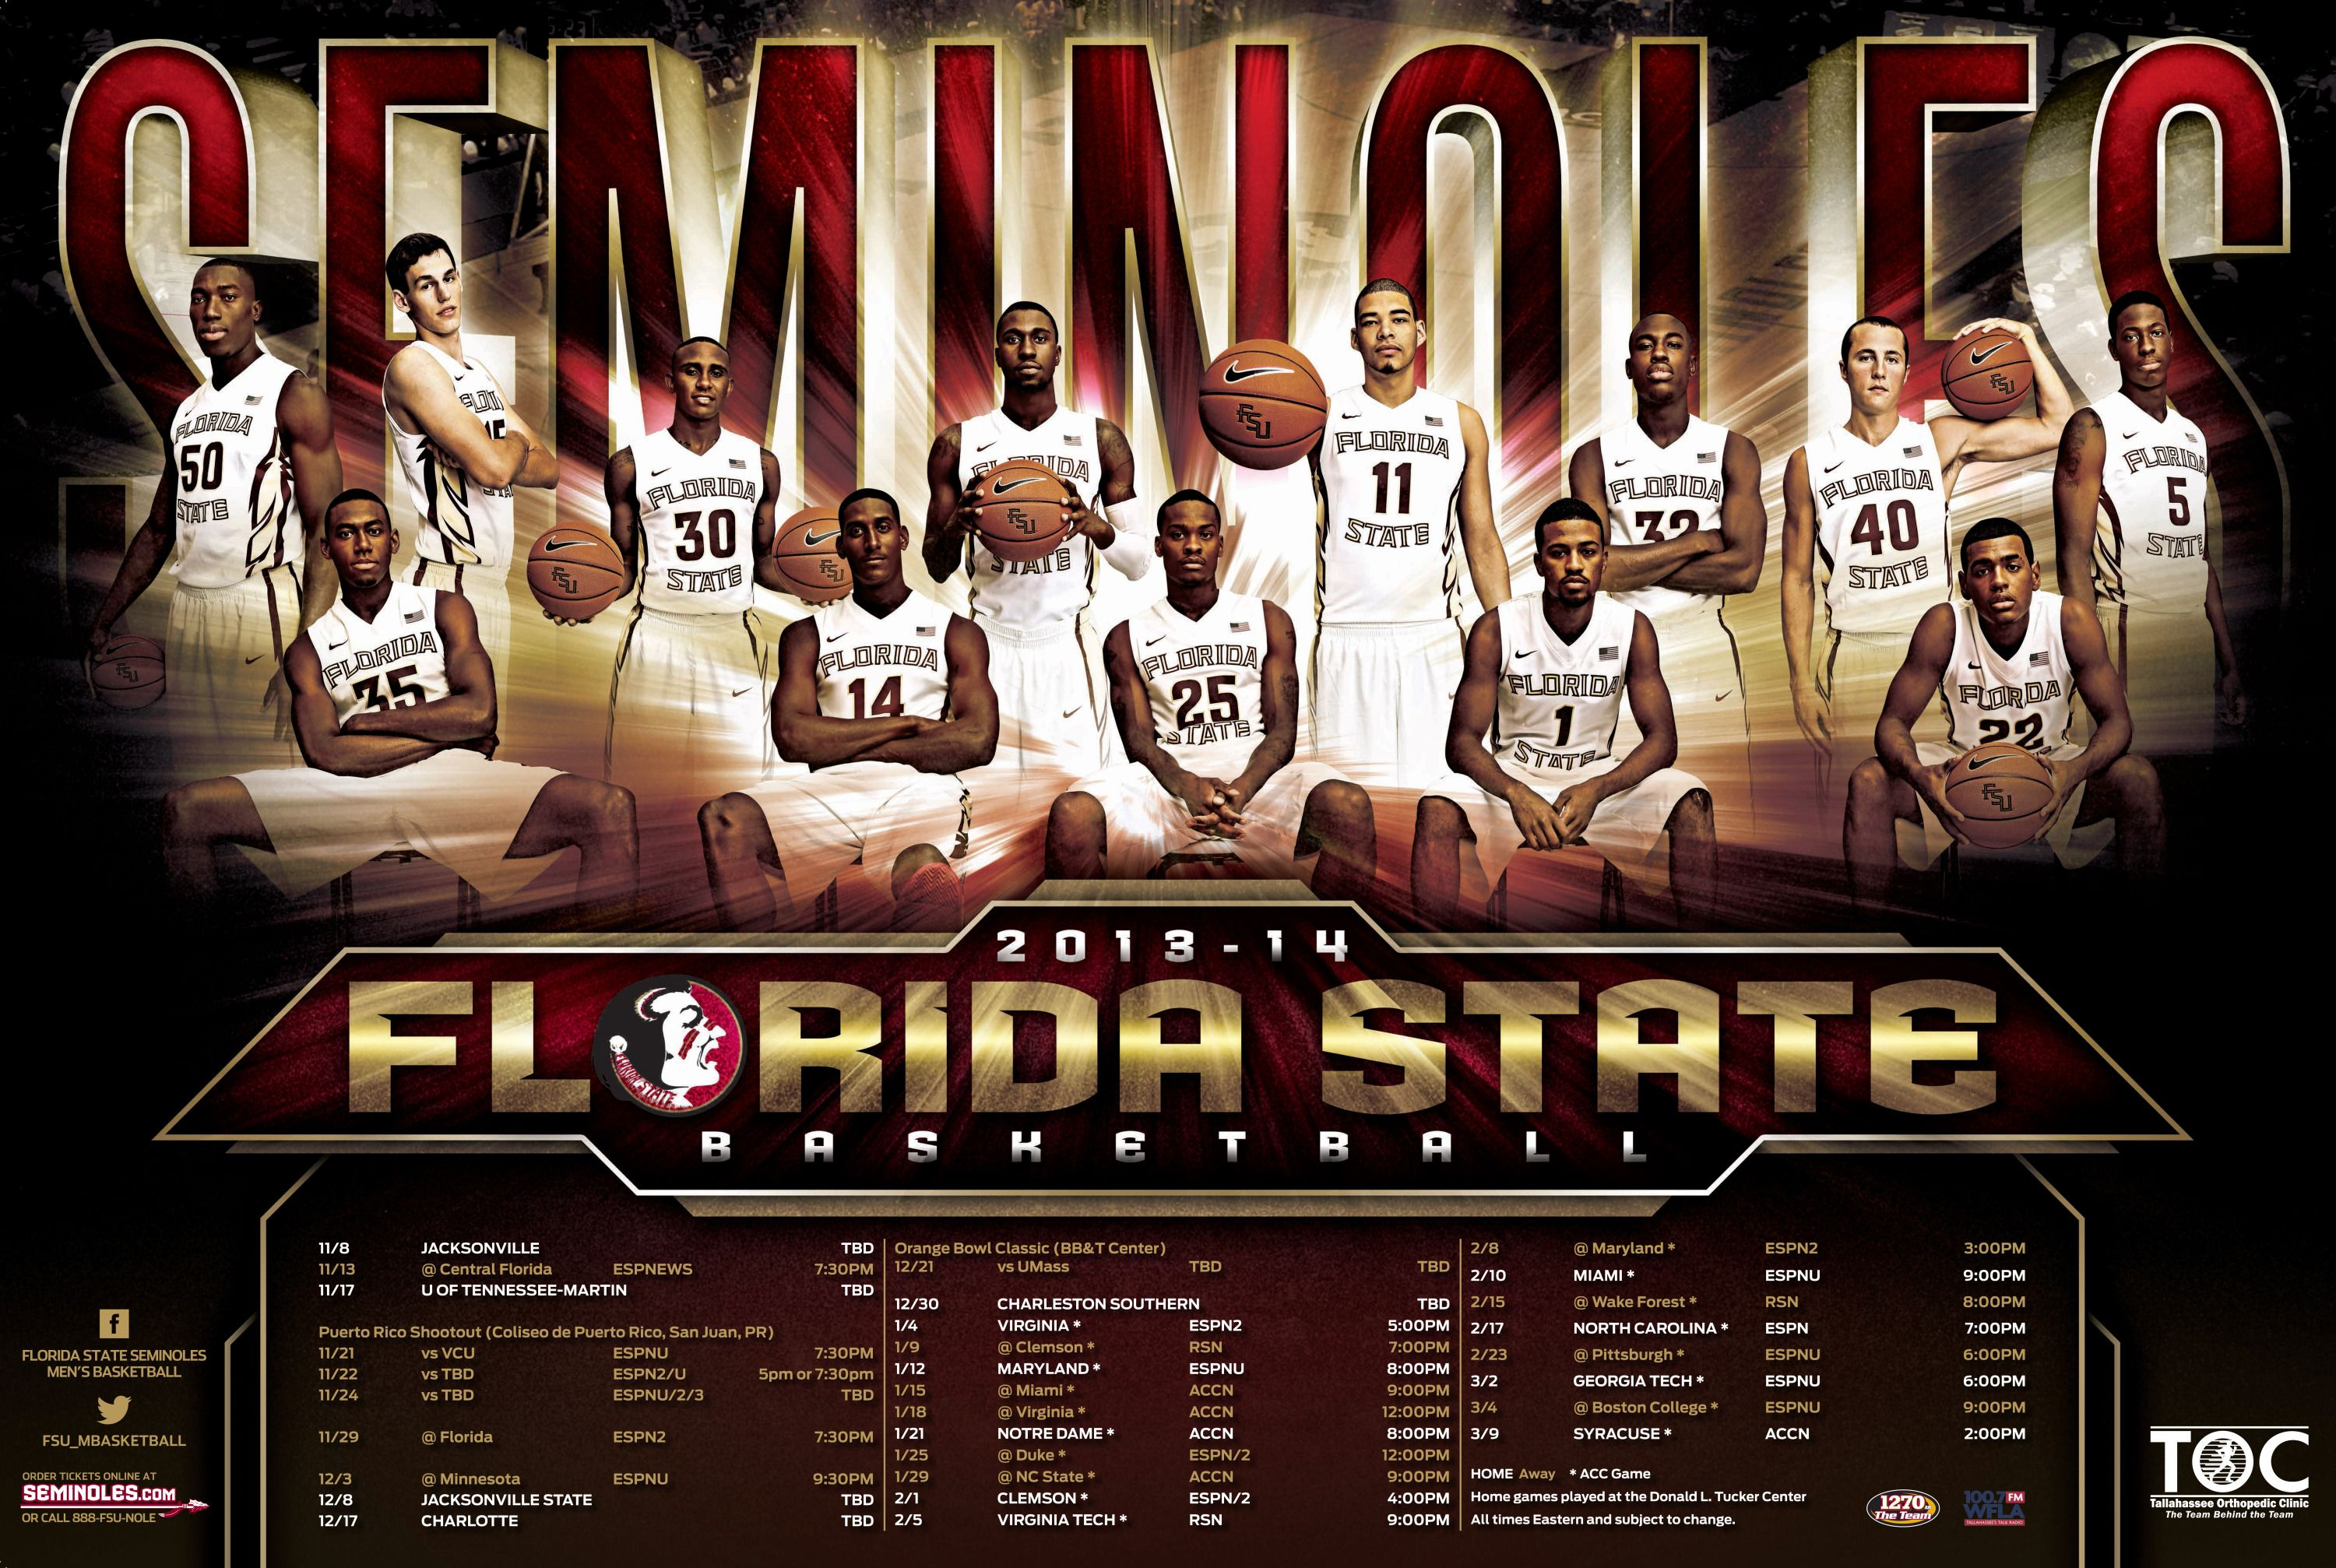 Good theme sports pinterest basketball posters high school basketball and team poster ideas for Sport poster ideas